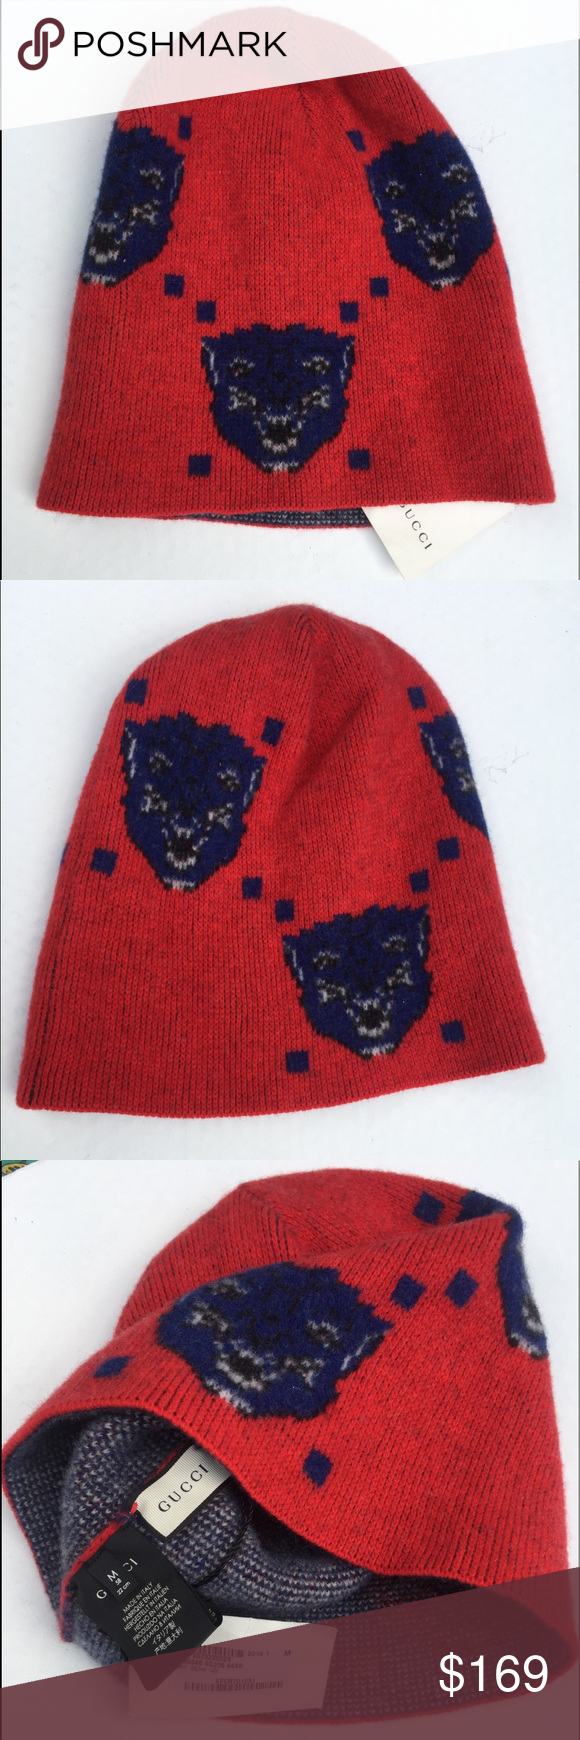 New Gucci Men s Angry Cats Wool Beanie Authentic NWT Gucci Wool Beanie. The  tags are on it and attached. But no box. 100% Wool. Very thick lined. d9113c8e1ad0